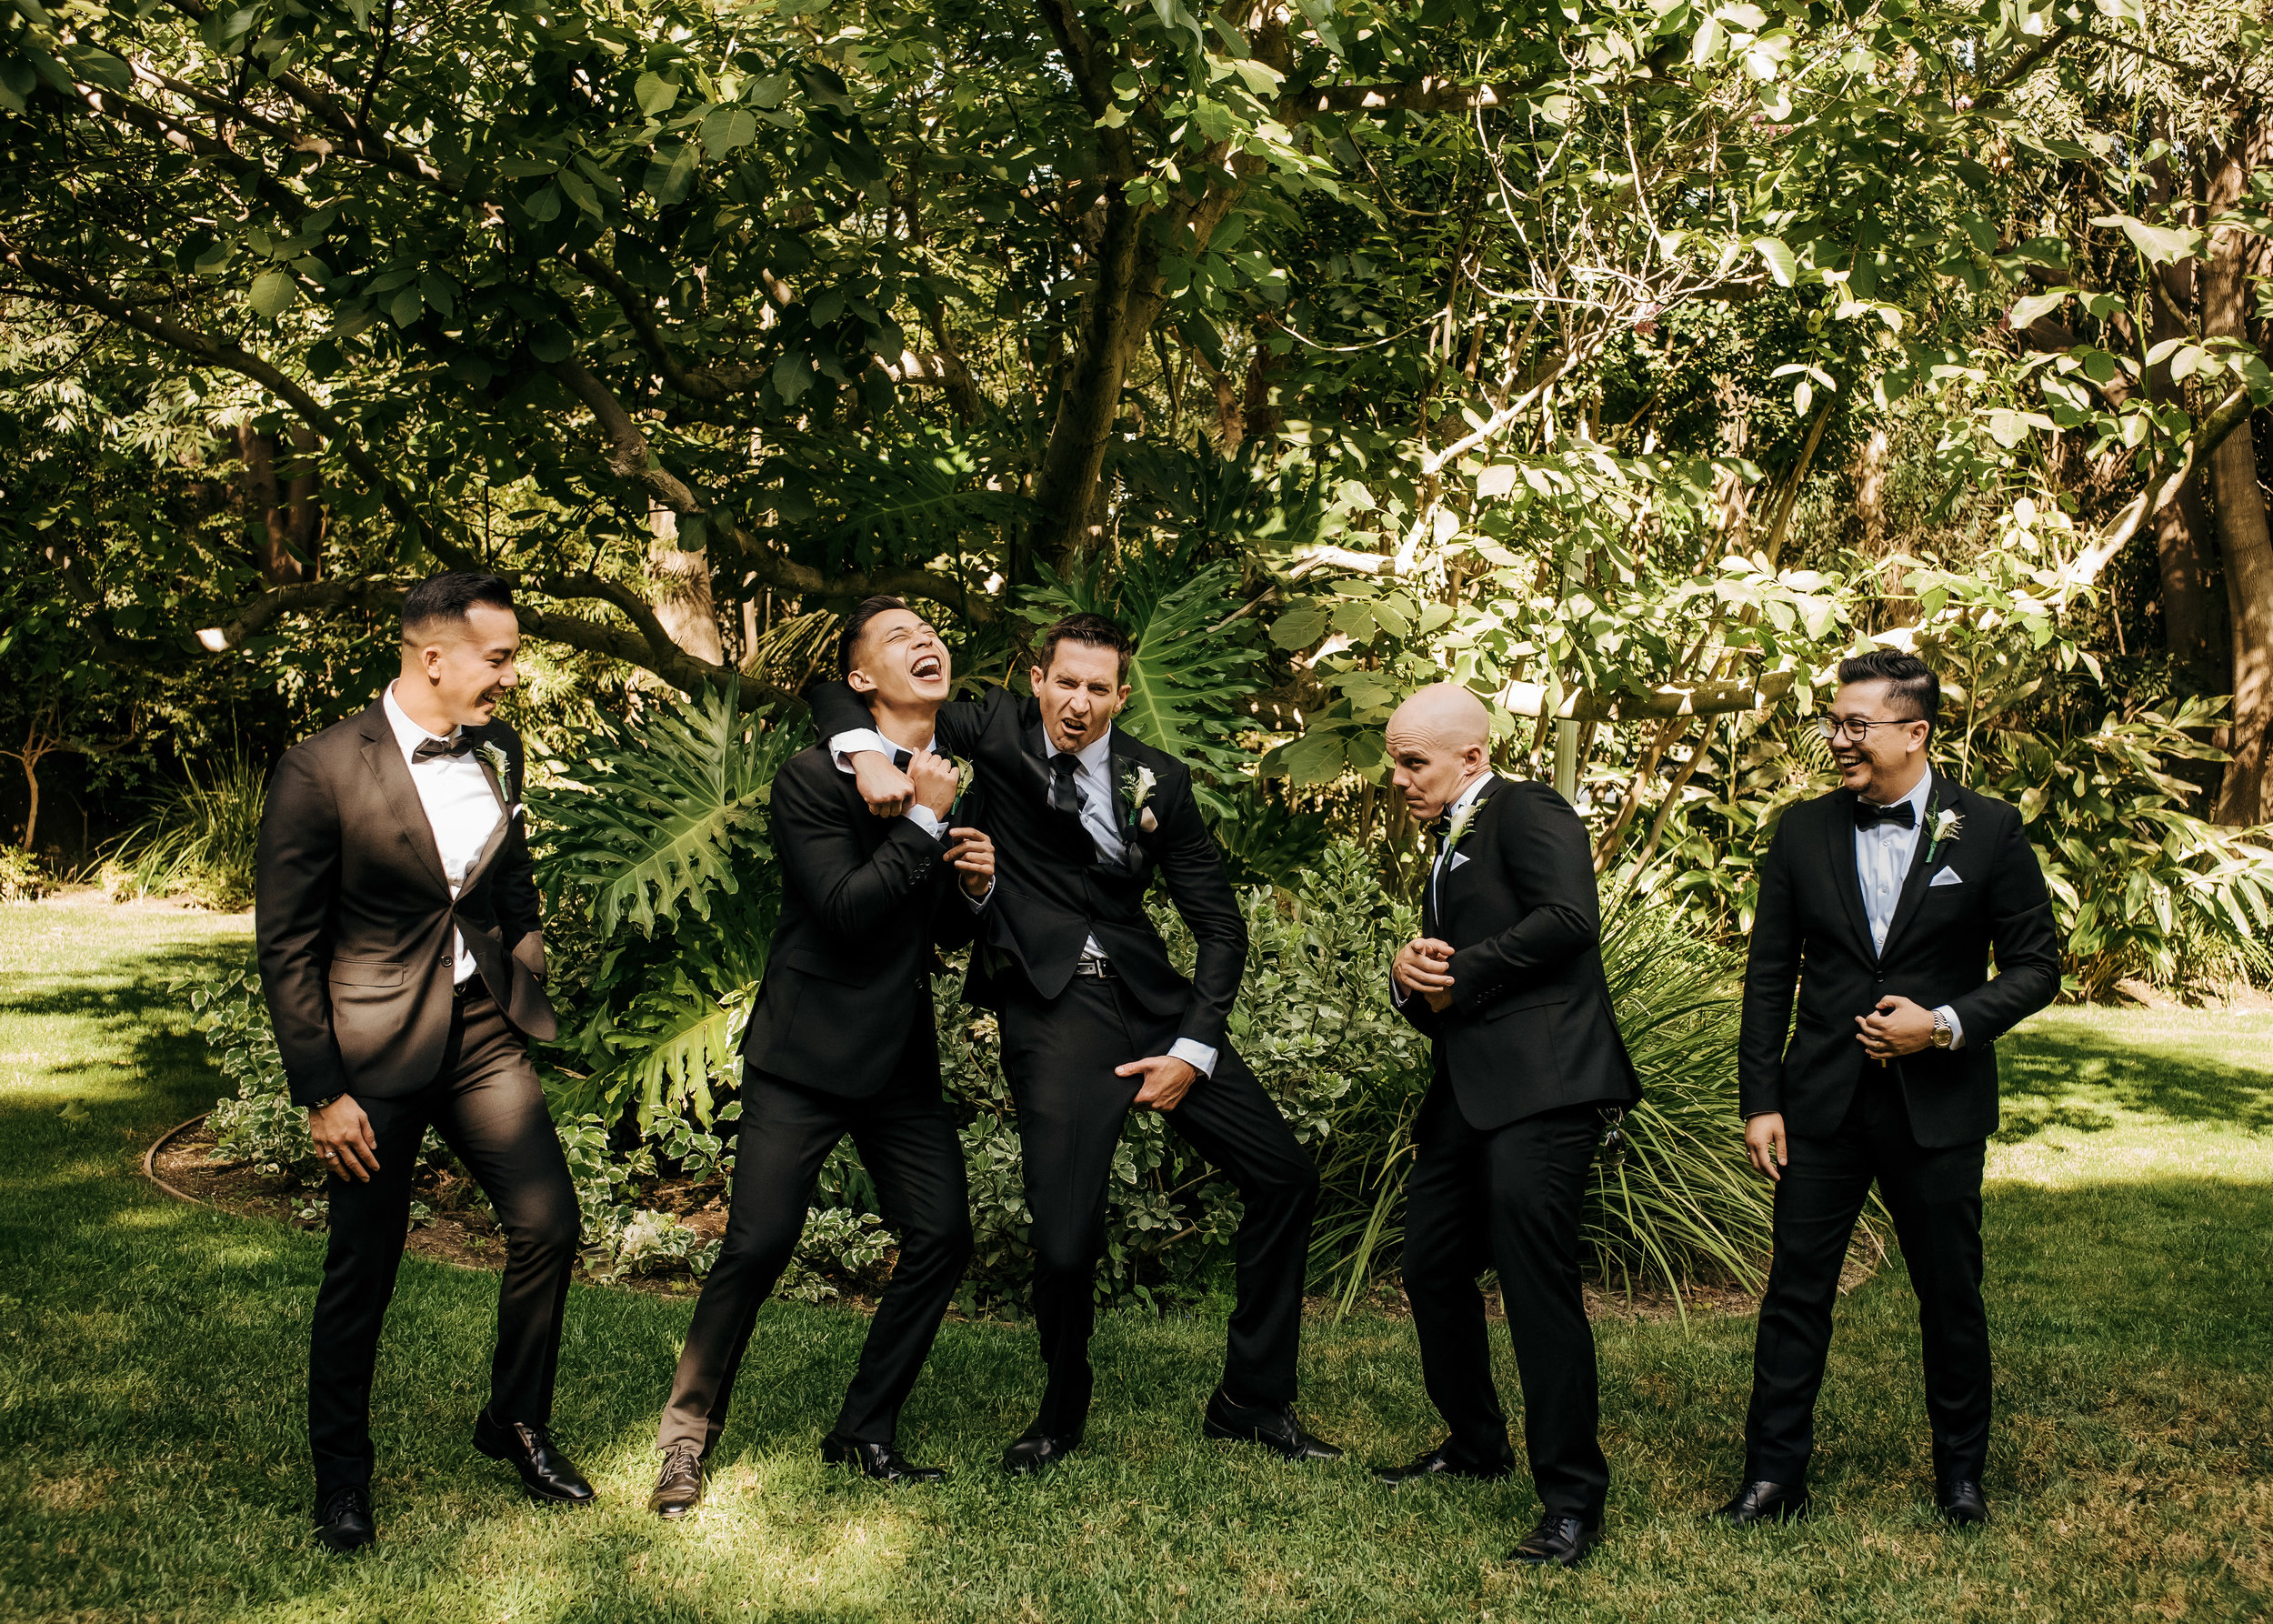 Turchin_20180825_Austinae-Brent-Wedding_160.jpg